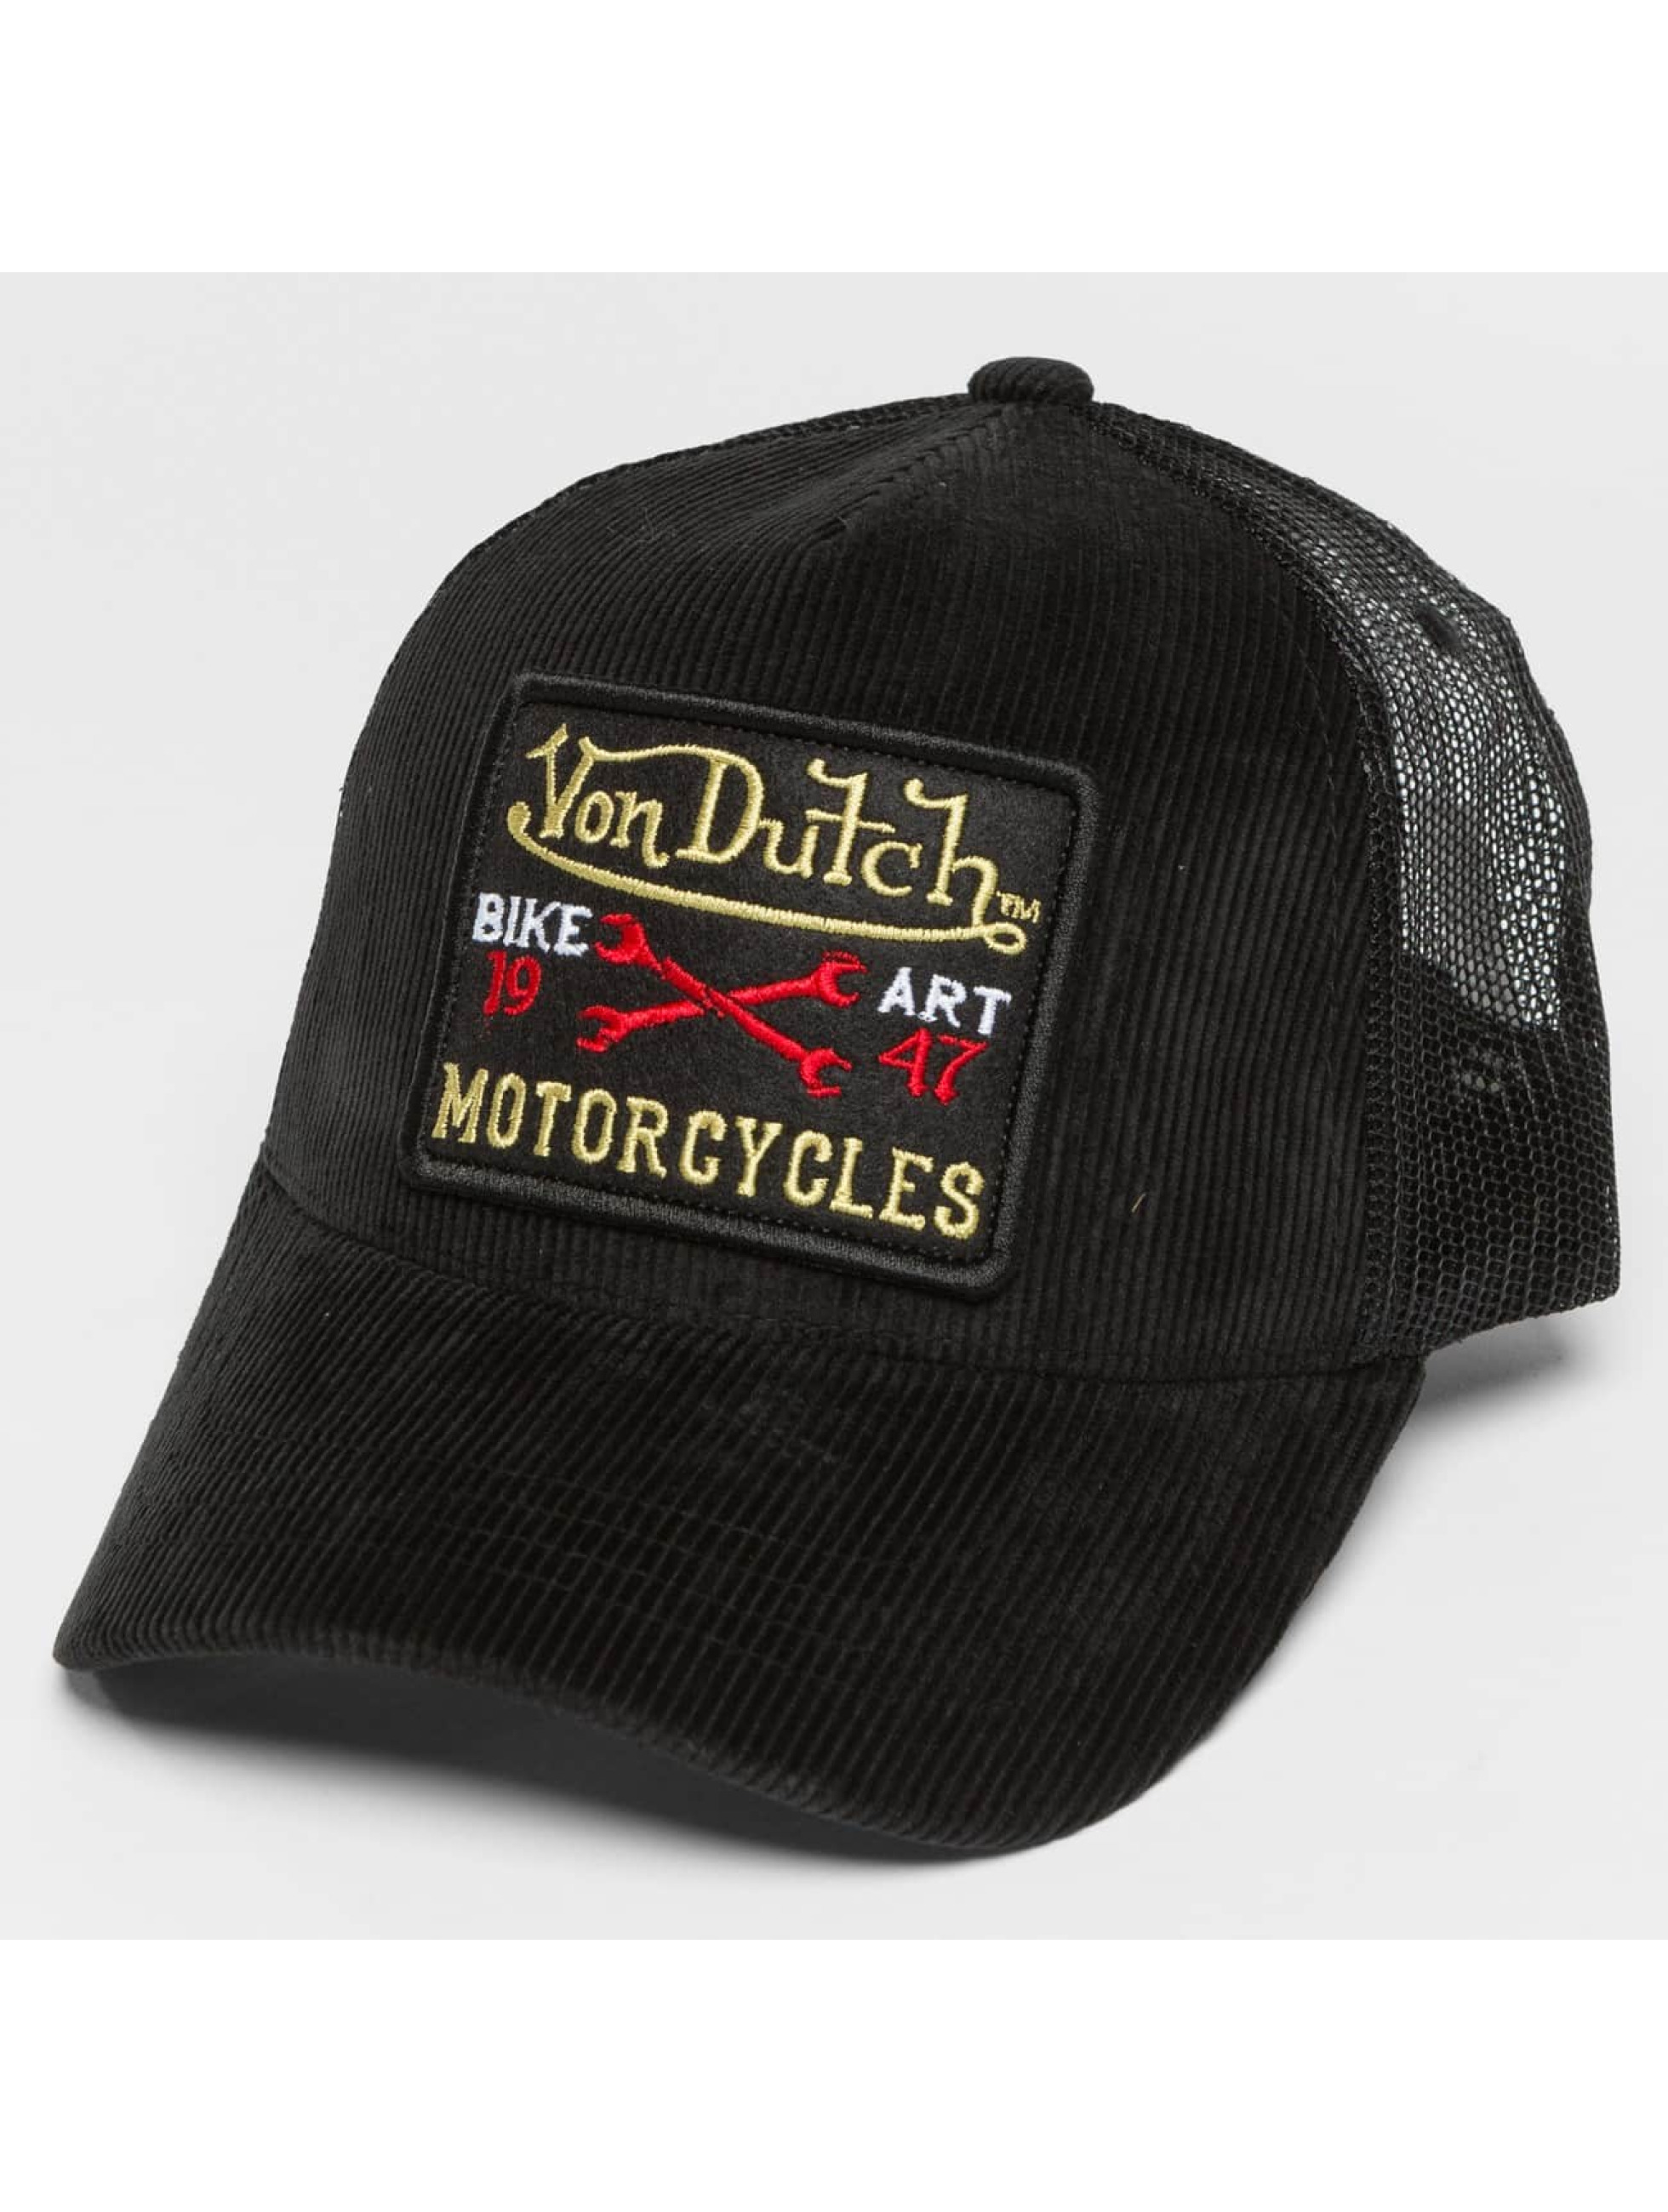 Von Dutch Gorra Trucker Cord negro